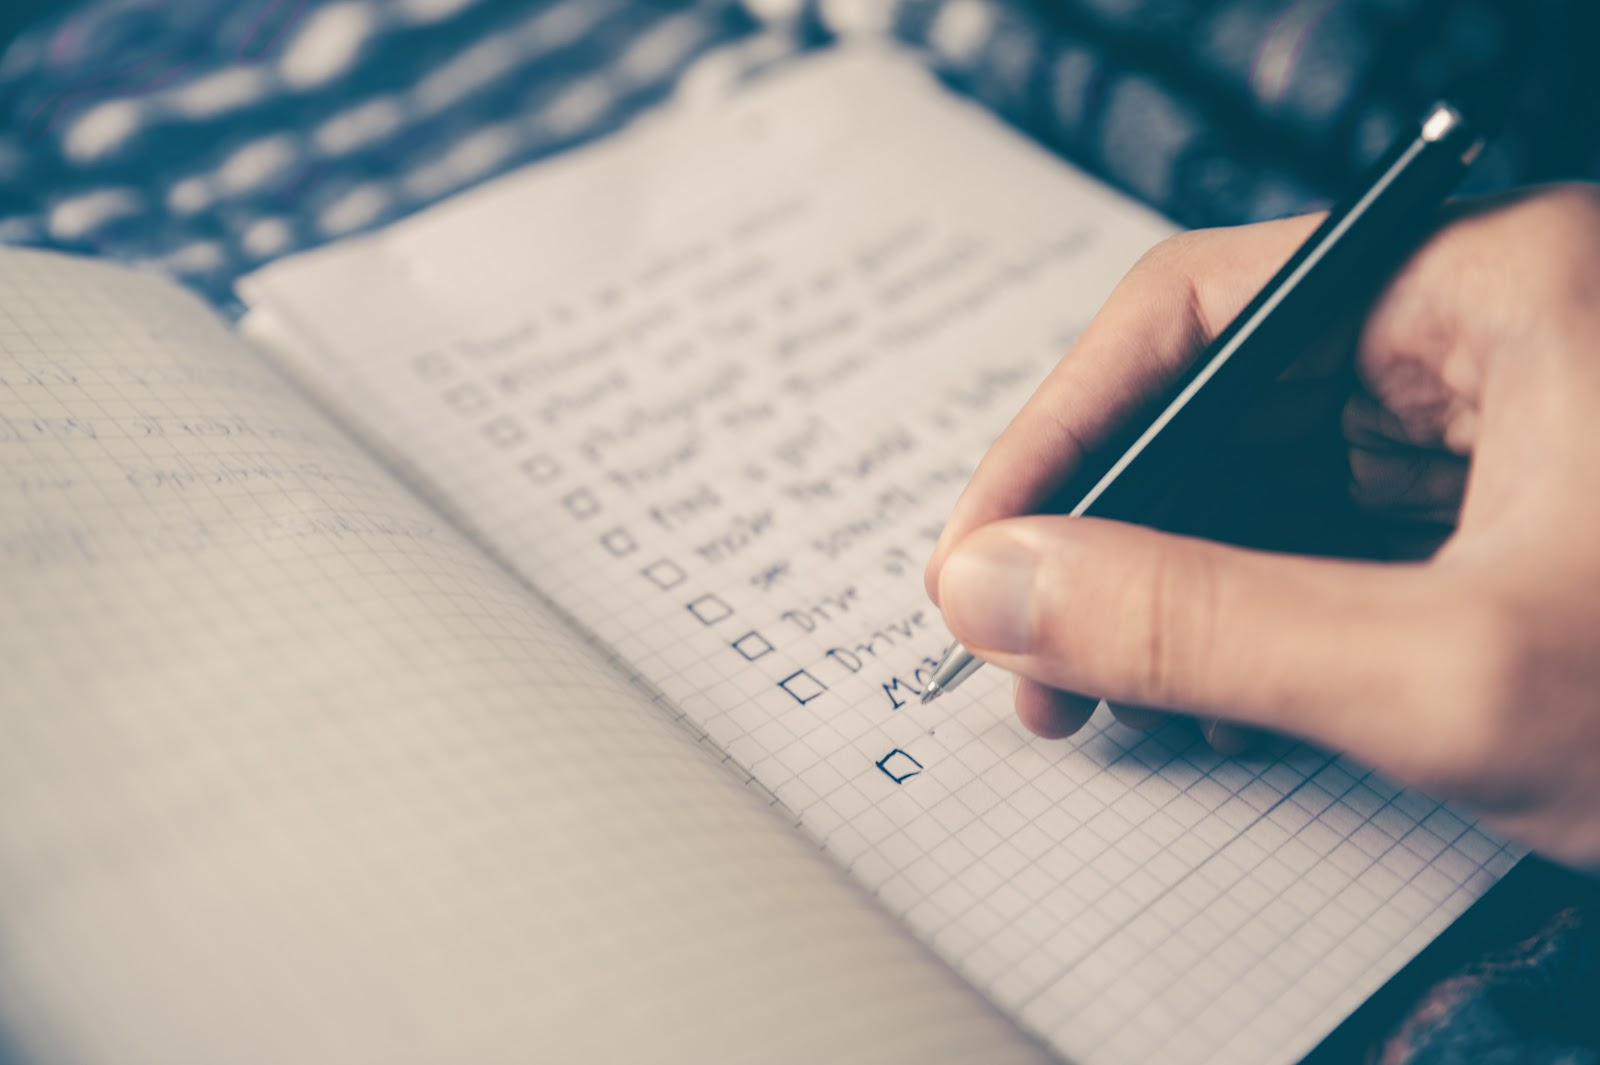 A prioritized to-do list (The Eisenhower model)